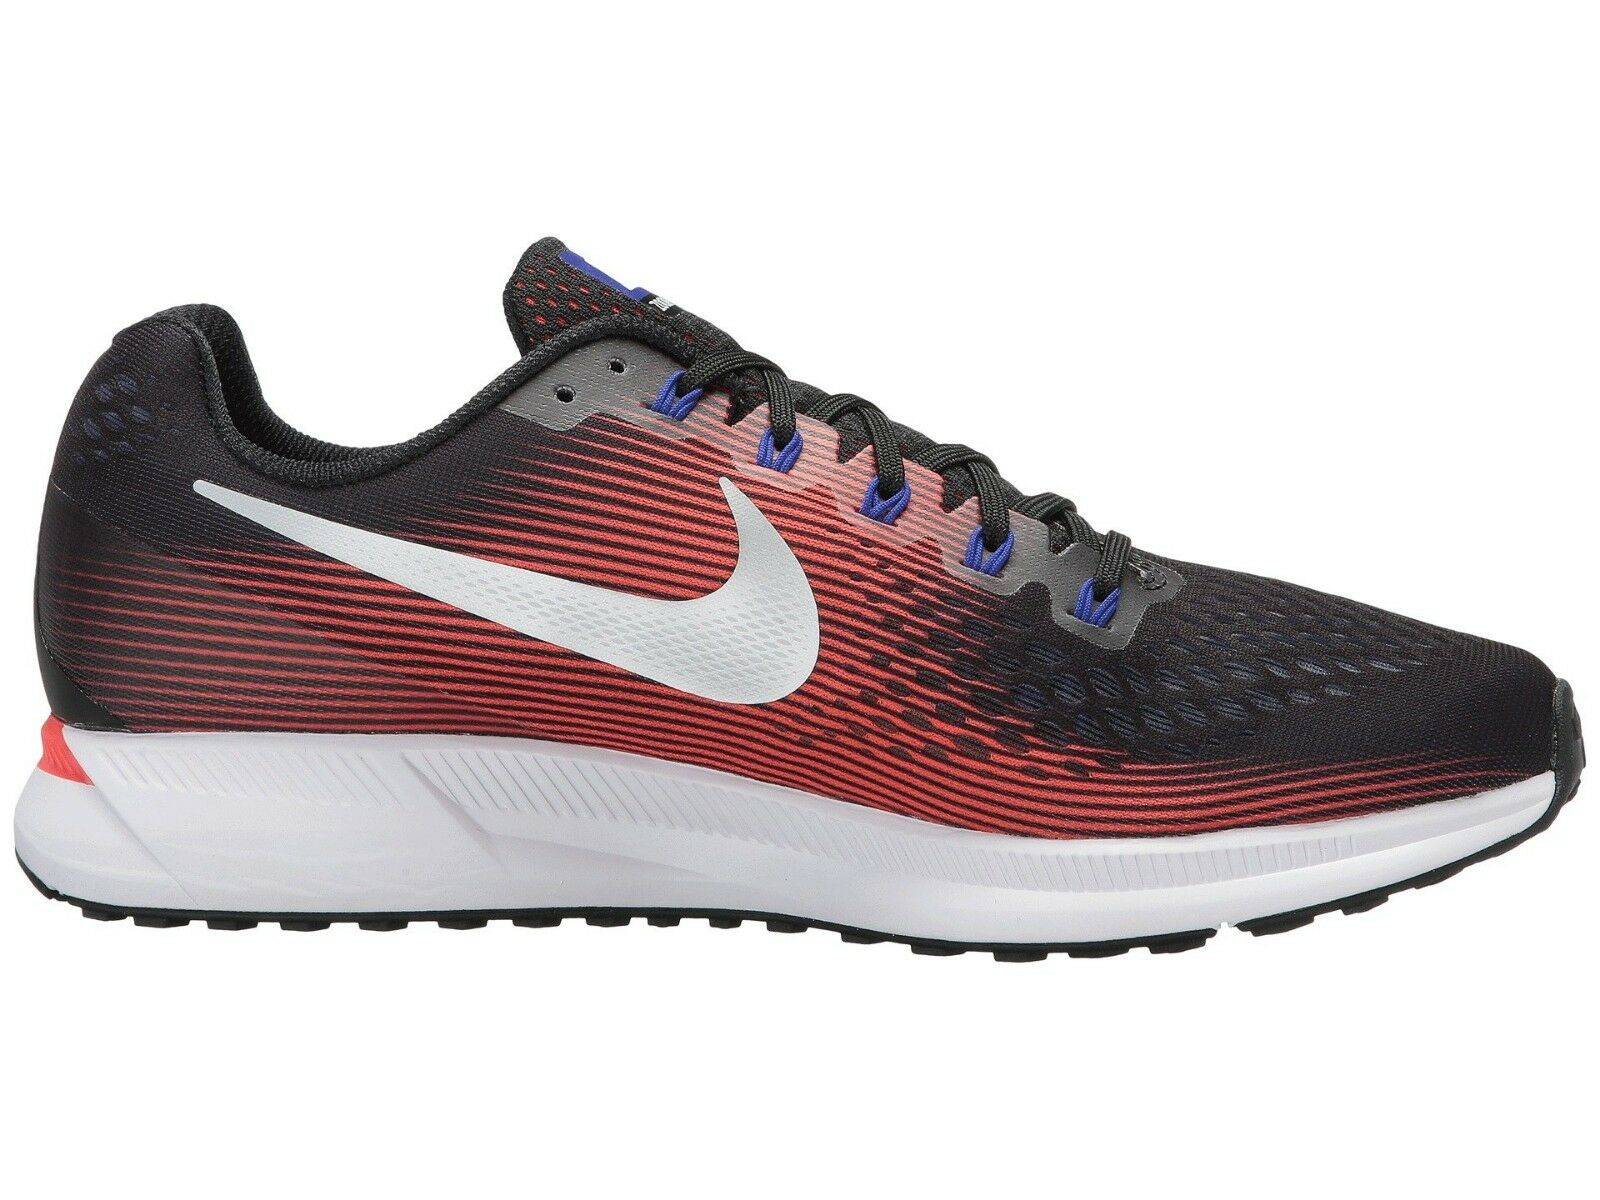 Men's Nike Zoom Pegasus 34 Running Running Running shoes, 880555 006 Multi Sizes Black Met Silve 9db306